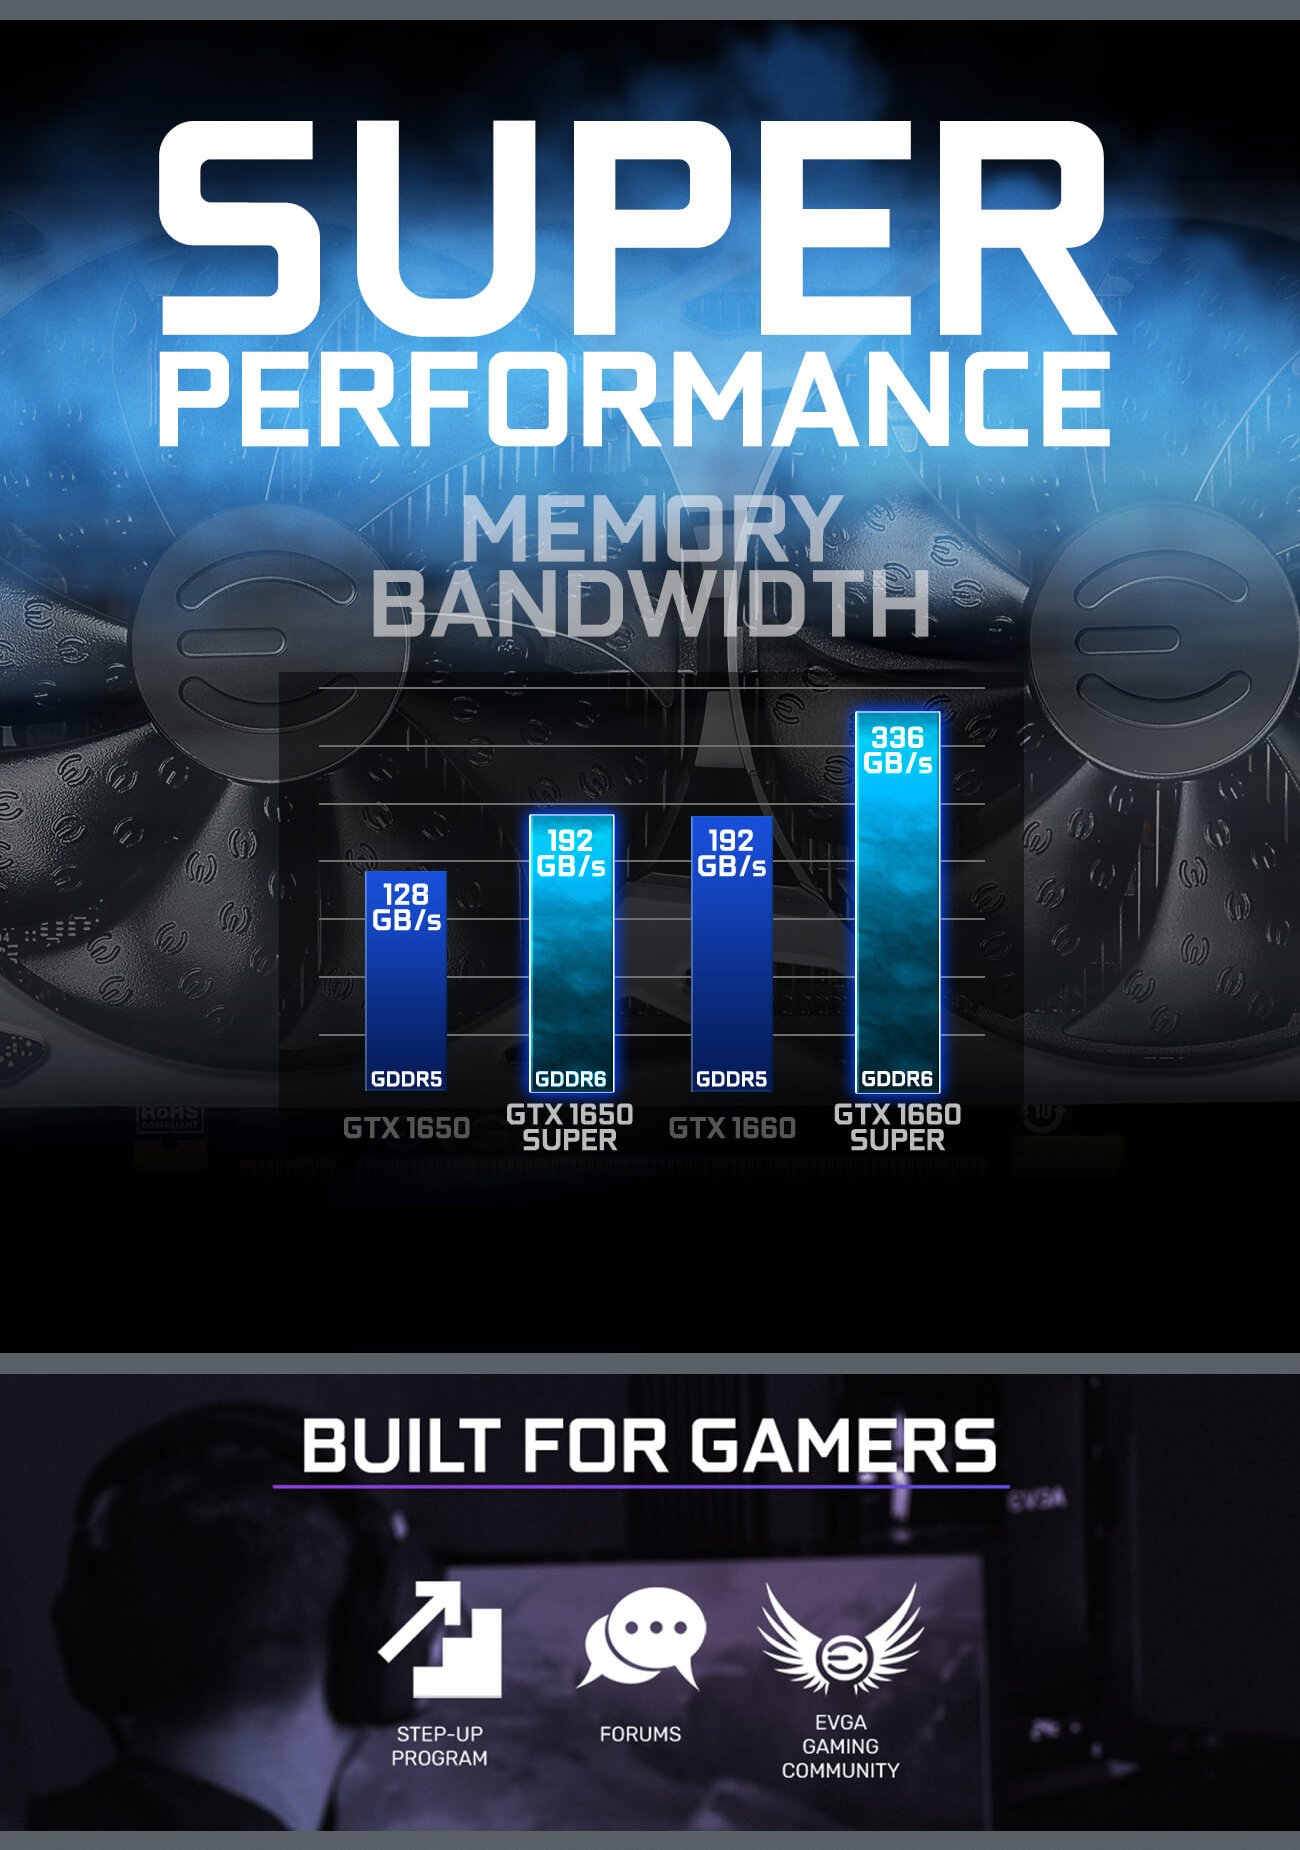 EVGA GeForce GTX 1650 SUPER gaming cards memory and performance are improved graph and Built for Gamers